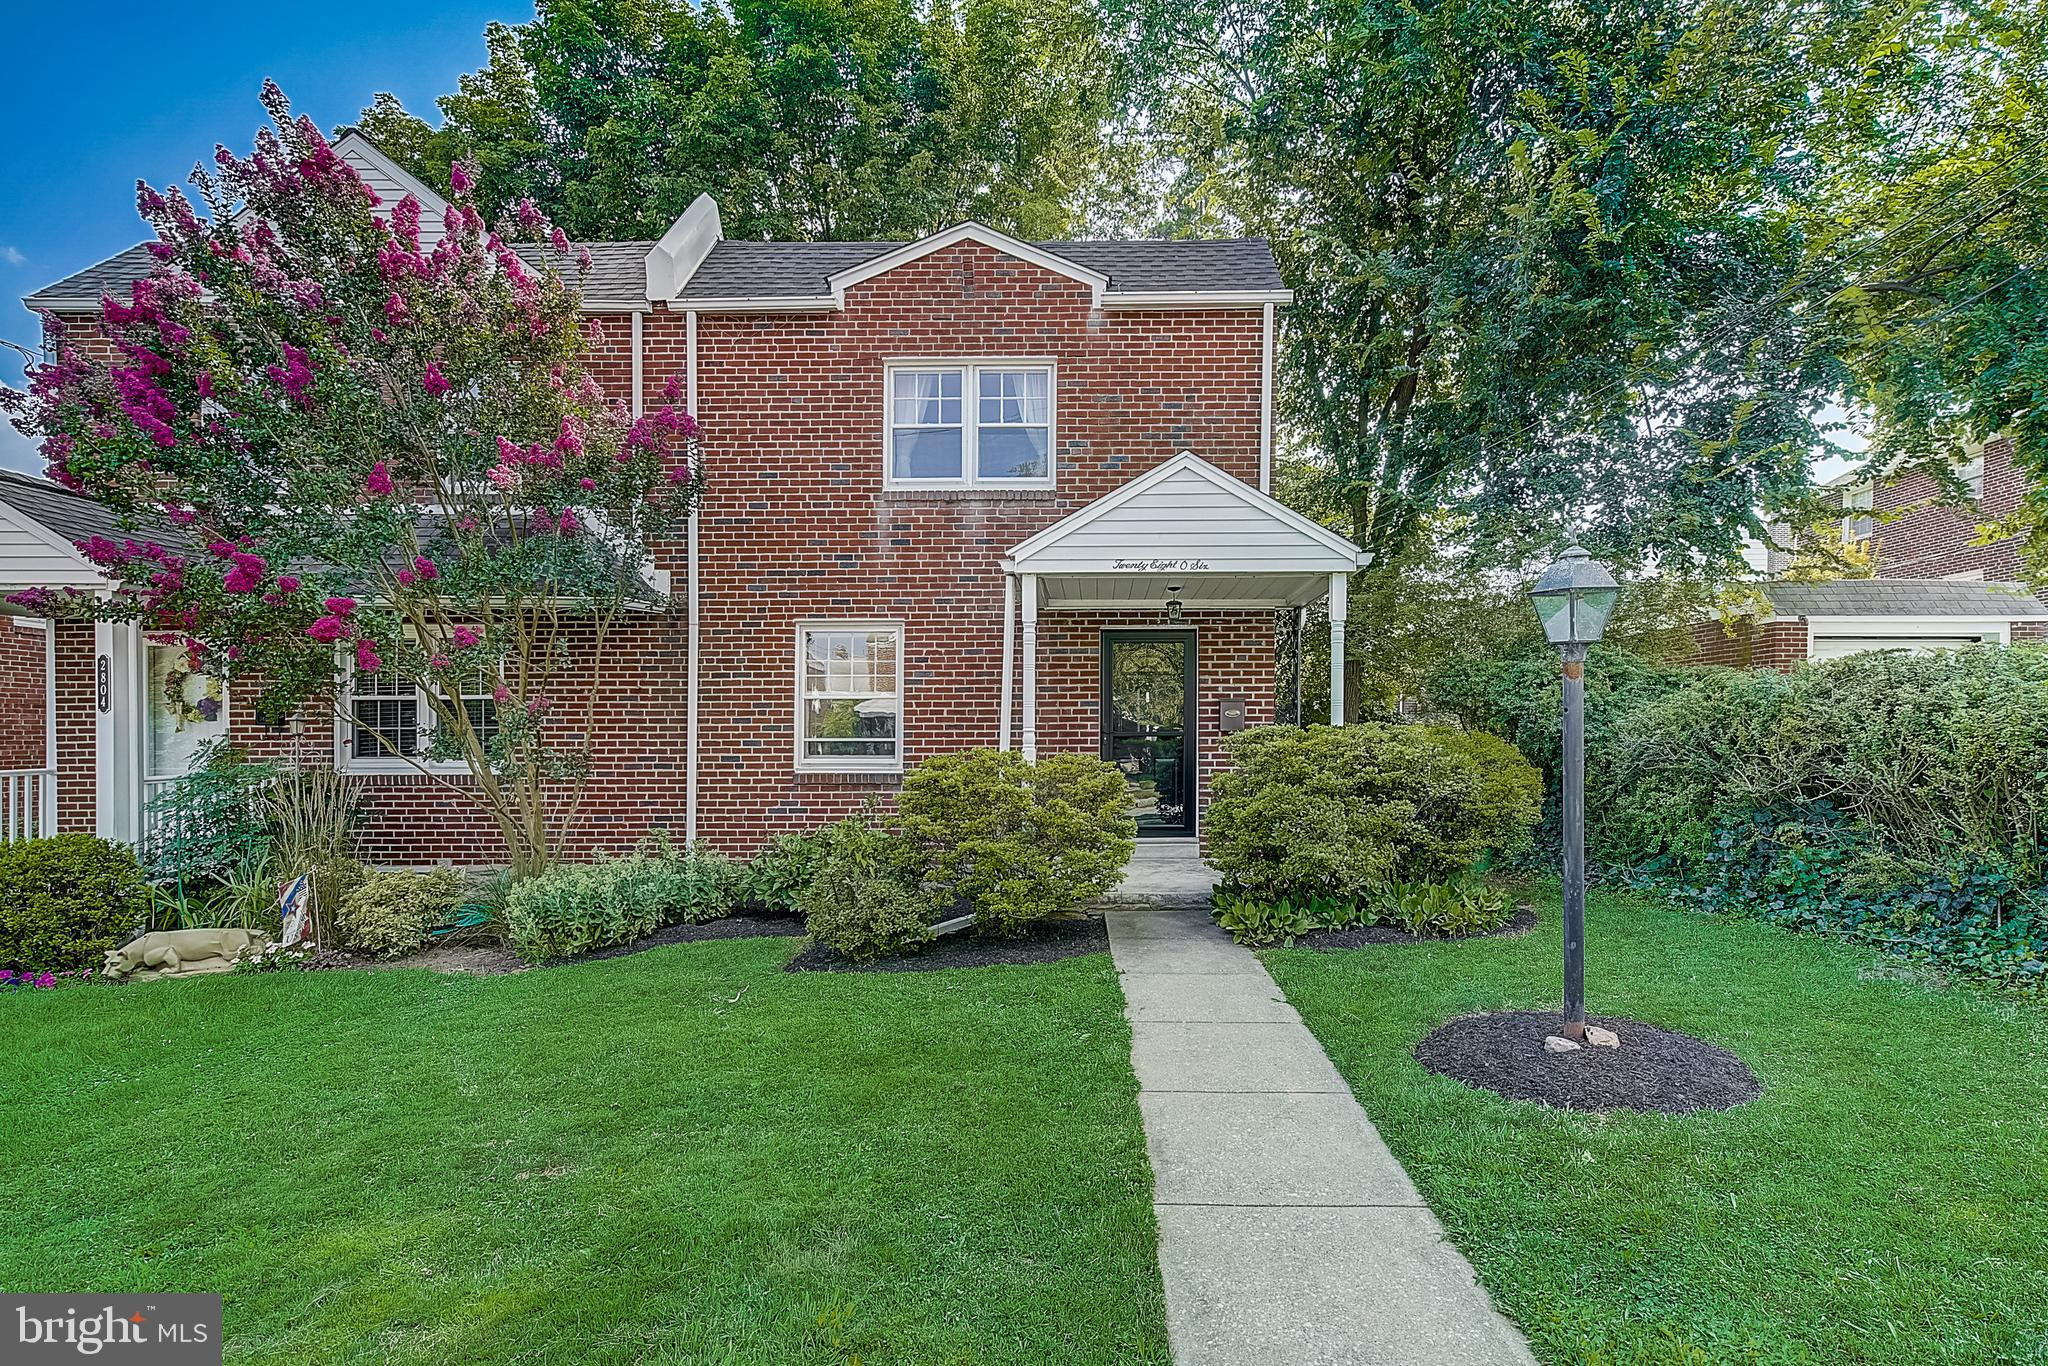 Don't miss this lovingly maintained brick twin home in Ardmore Park! This fantastic home boasts hardwood floors, a great rear deck, attached garage, and offers 3 spacious bedrooms, including the large Primary Bedroom with expanded Walk-In closet. Upgrades from current owner include a new roof (2019), new front door and garage door (2020), new hot water heater (2020), and a brand new washer/dryer (2021). Conveniently located just blocks from local elementary school, public transit, Suburban Square, Trader Joe's & downtown Ardmore shopping and eateries. This is the one!